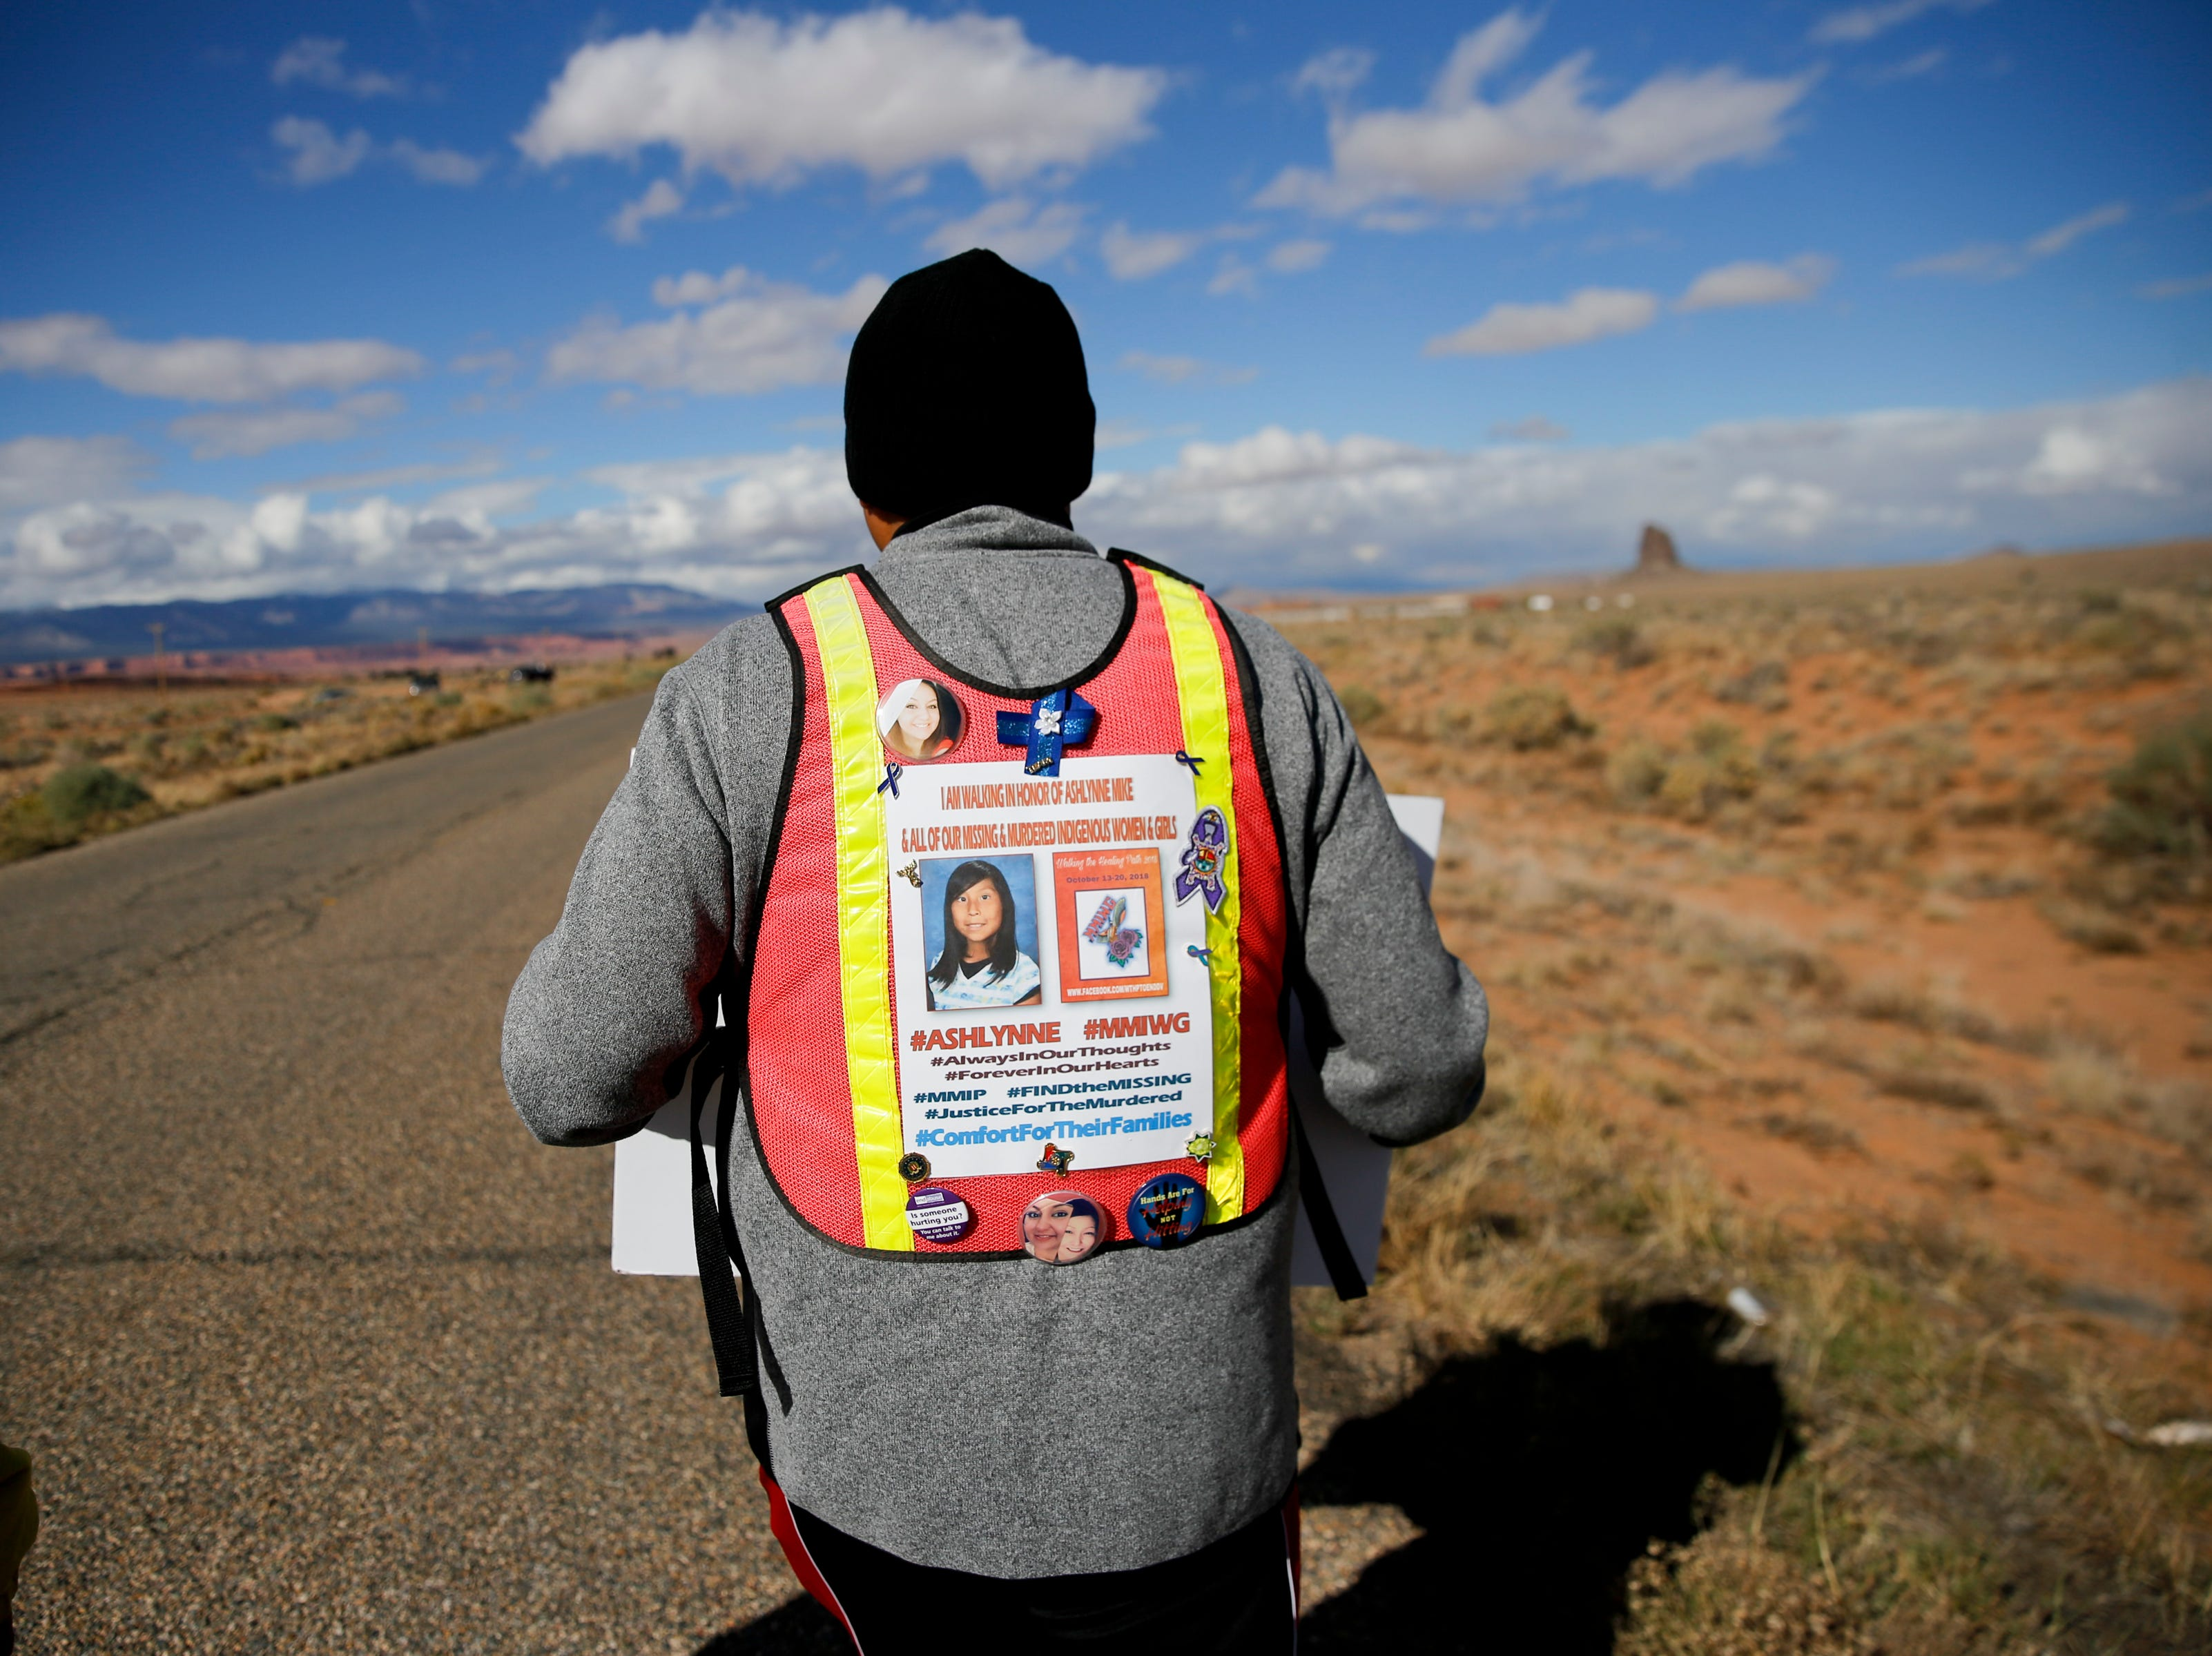 John Tsosie, co-founder of Walking the Healing Path walks along Navajo Route 13, Thursday, Oct. 18, 2018 in Red Valley, Arizona. Tsosie said the walk is underway to bring awareness about murdered and missing indigenous women. It is also dedicated to Ashlynne Mike after Tsosie received permission from Gary Mike and Pamela Foster to include their daughter for the event.